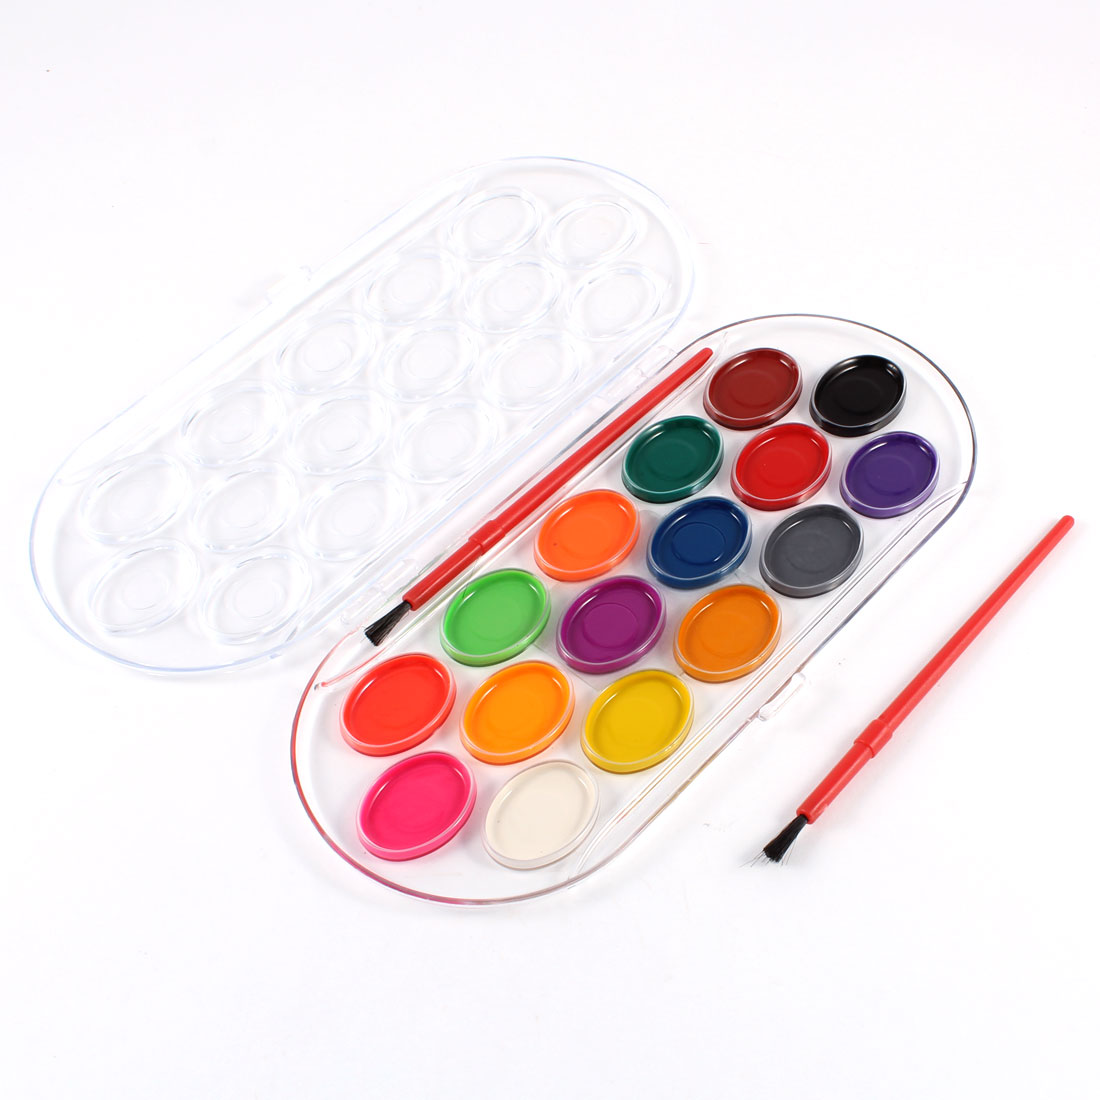 Washable 16 Assorted Colors Watercolors Paint w 2 Brushes